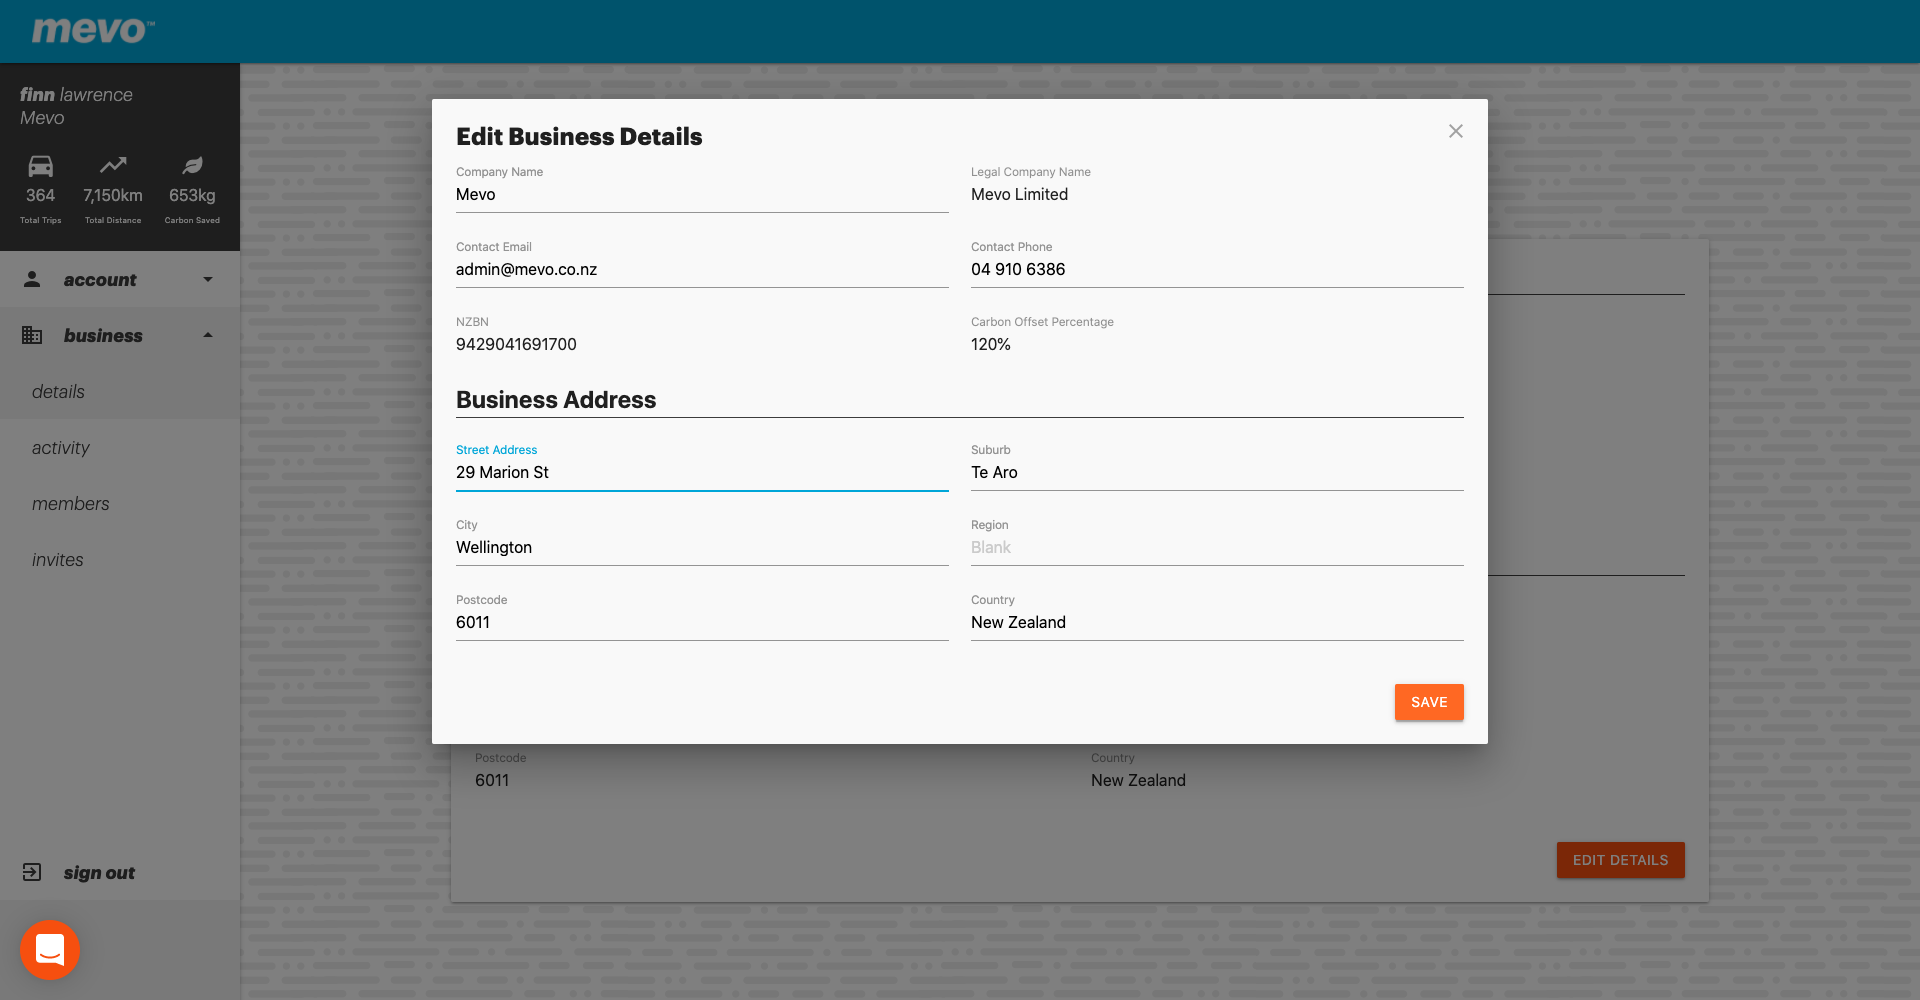 A screenshot of the Mevo for Business console showing a popup to edit the company details